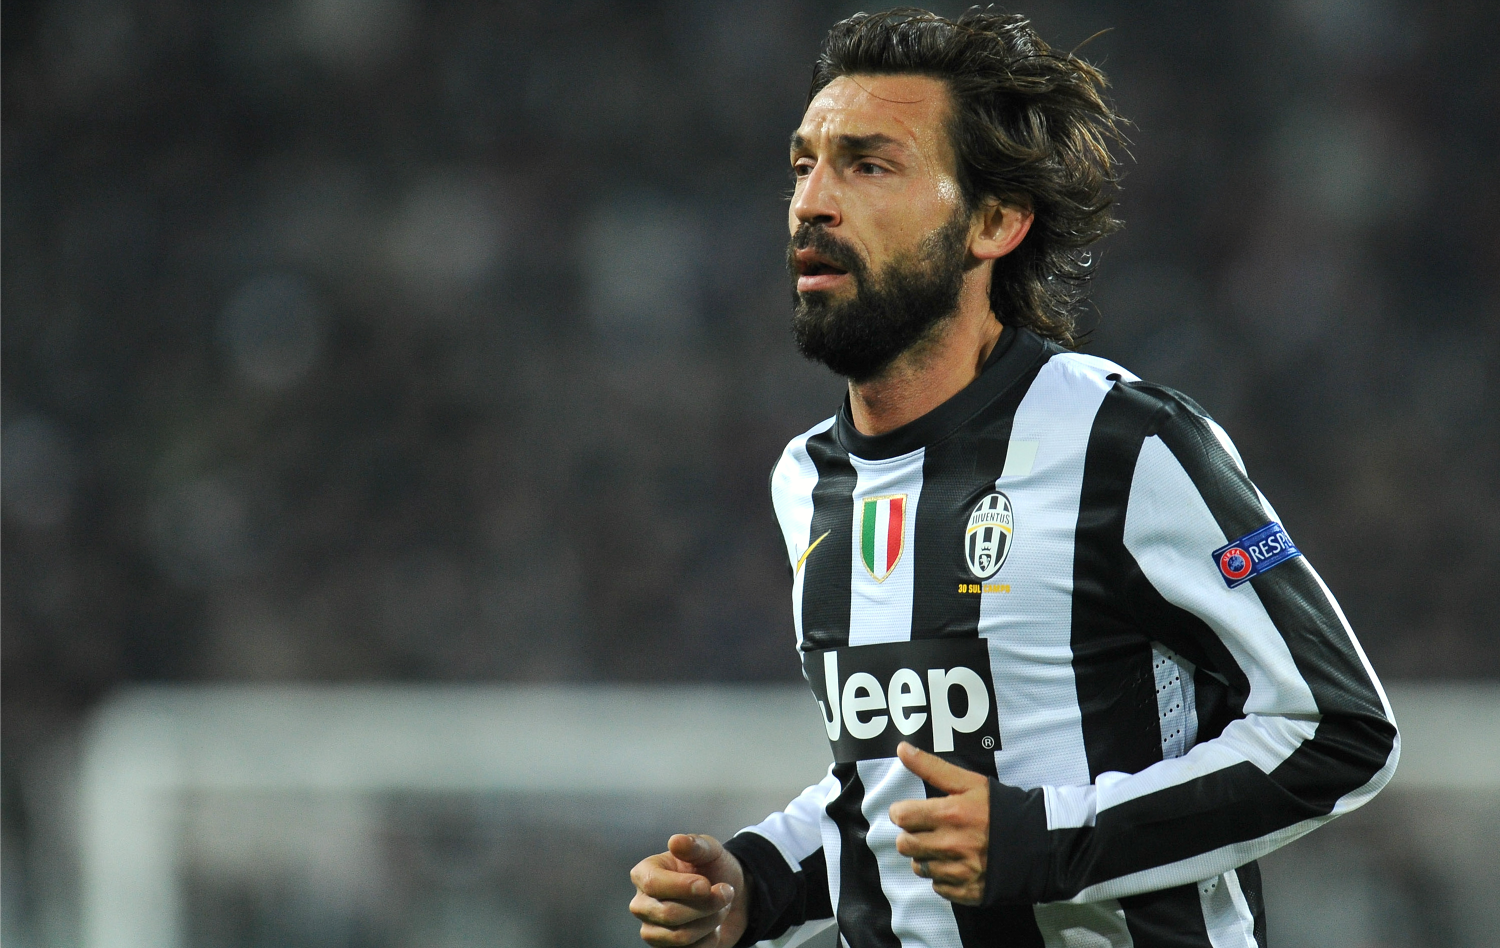 Andrea Pirlo Wallpaper and Background 1500x948